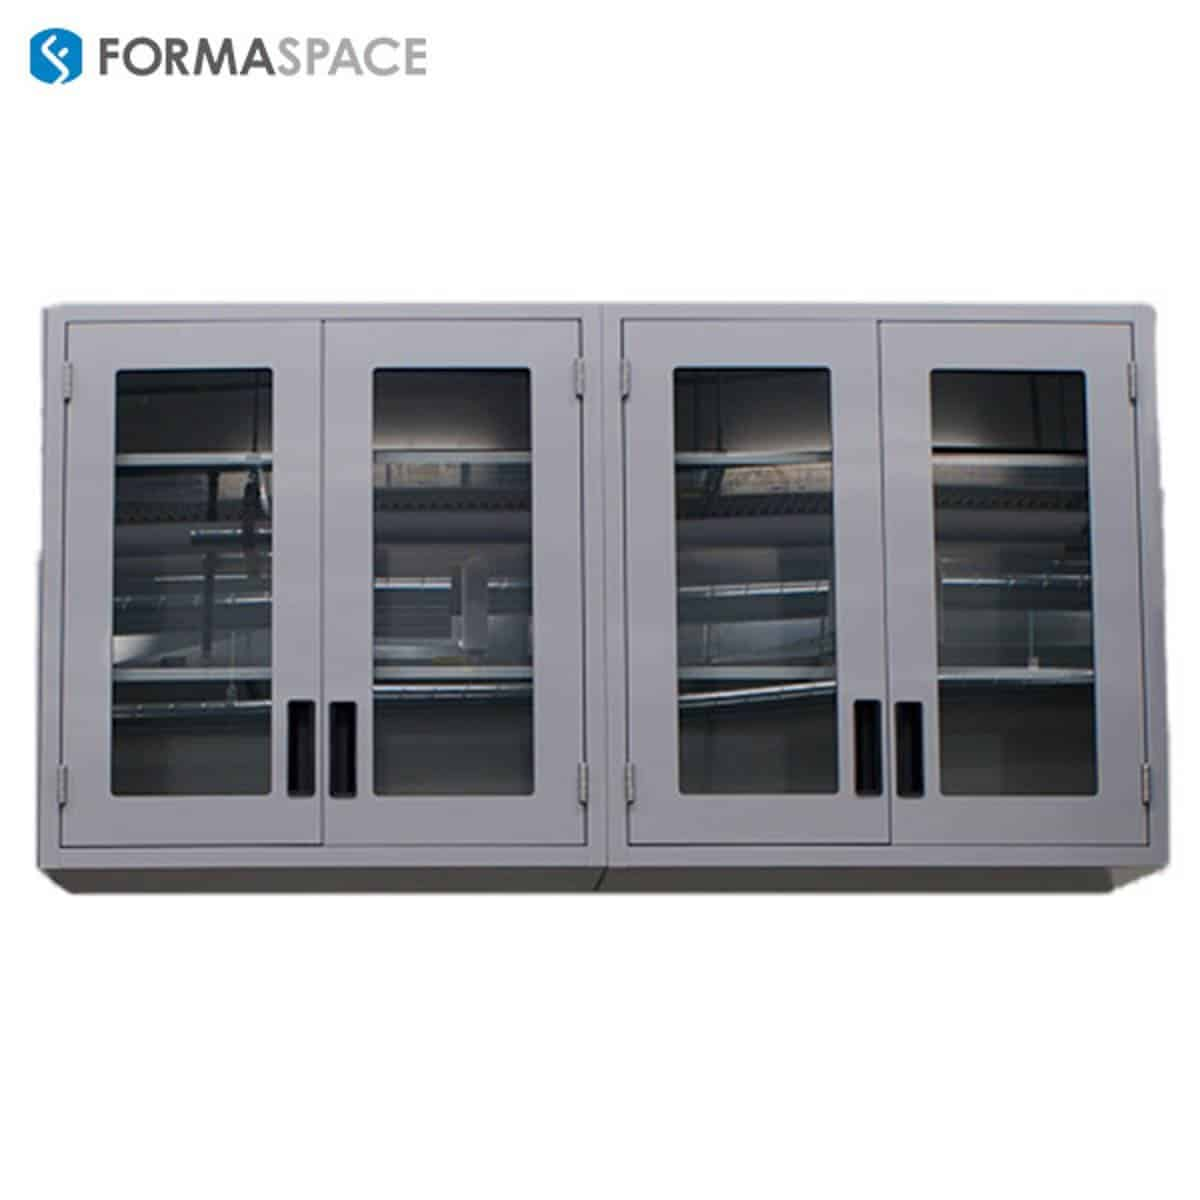 Steel Storage Cabinets with Glass Panes to View All Equipment